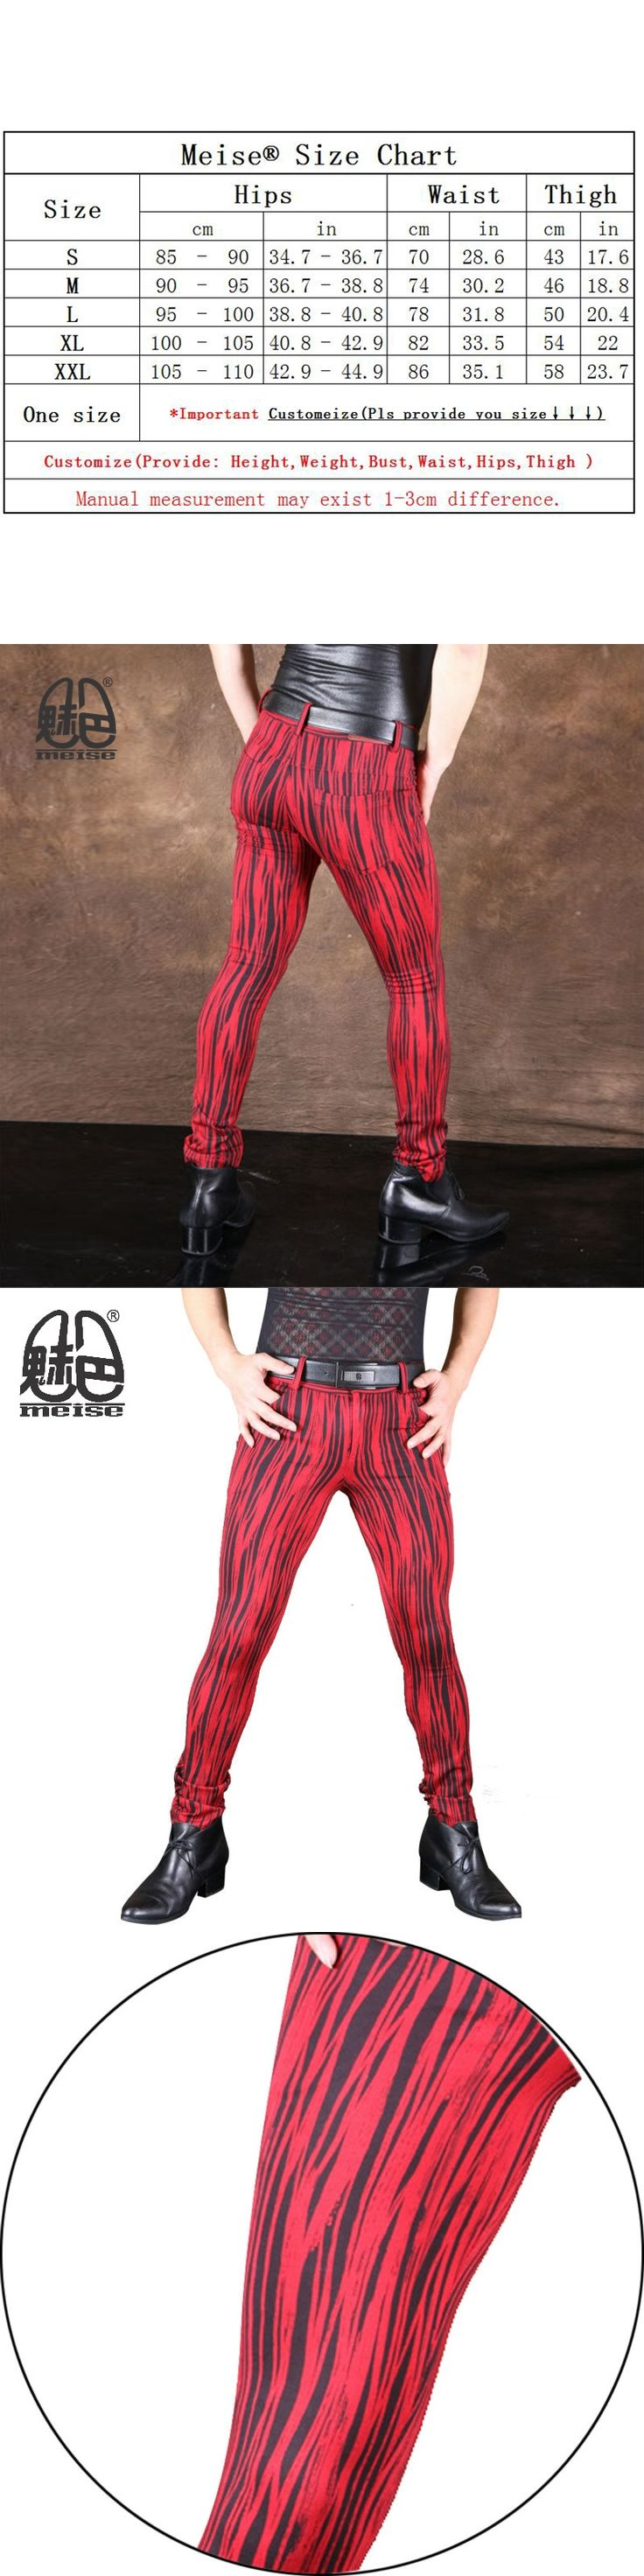 2017 New Fashion Elastic Denim Red Bark Pattern Pencil Pants for Men Cotton Slim Fit Casual Soft Comfortable Fabric Customize